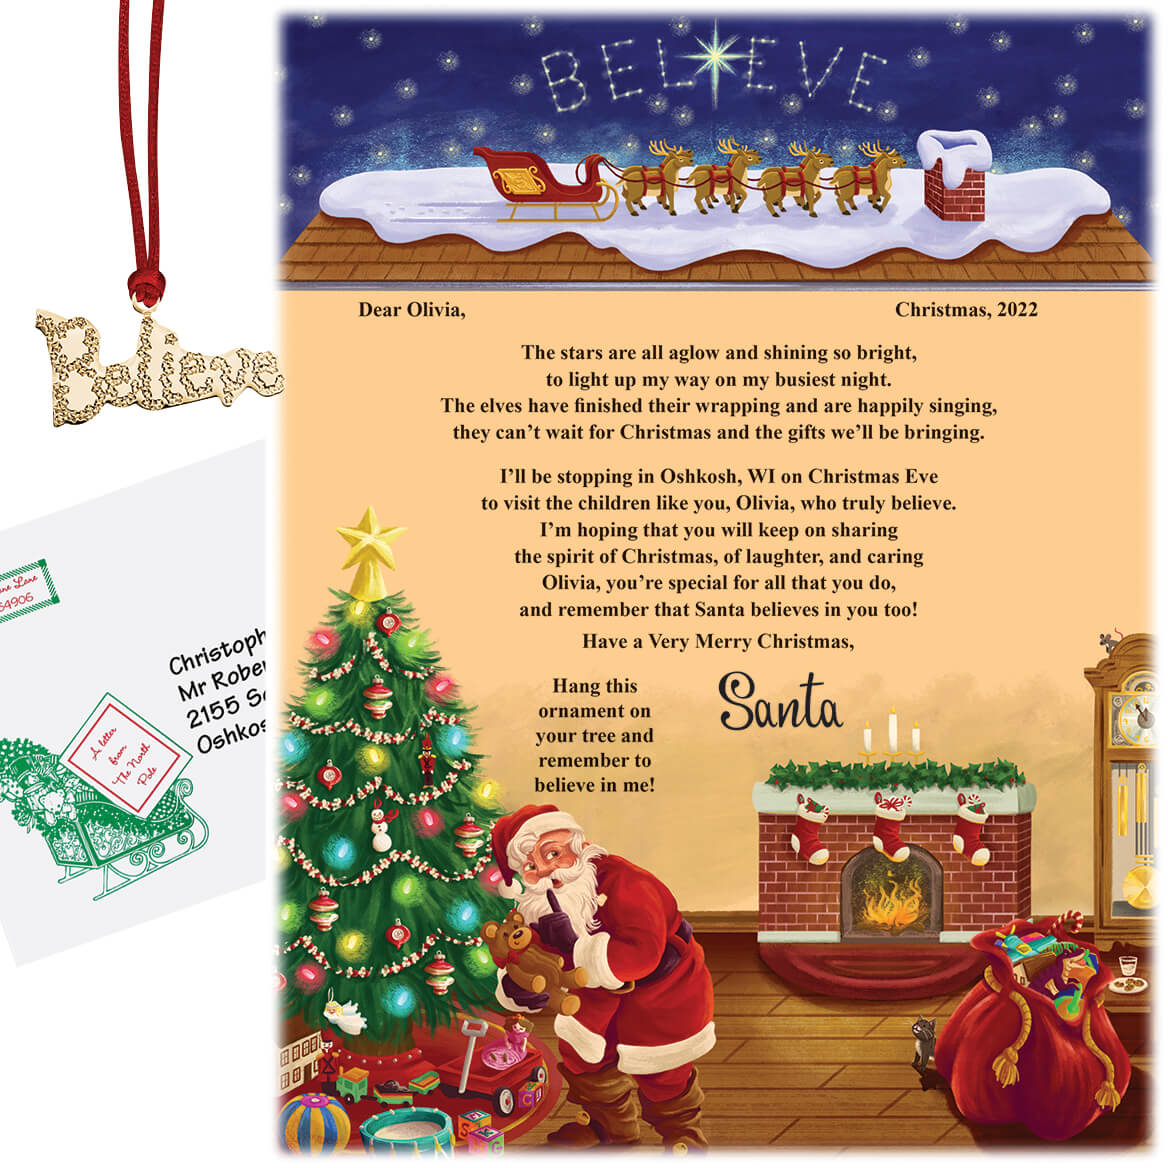 Personalized Letter From Santa and Ornament - Miles Kimball